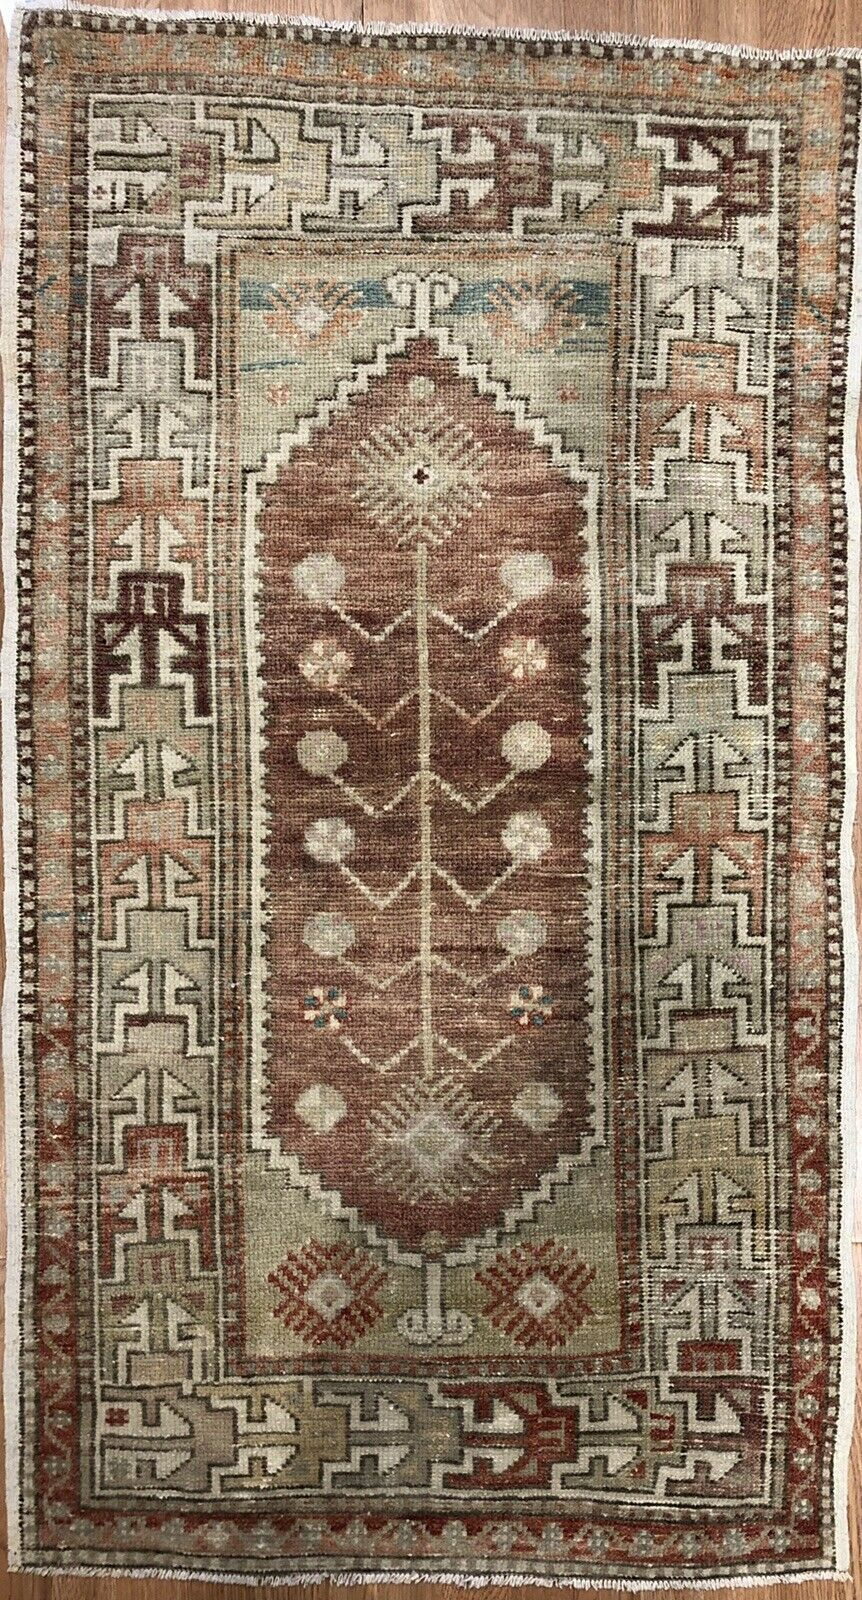 Opulent Oushak - 1960s Vintage Turkish Rug - Tribal Carpet - 2'5